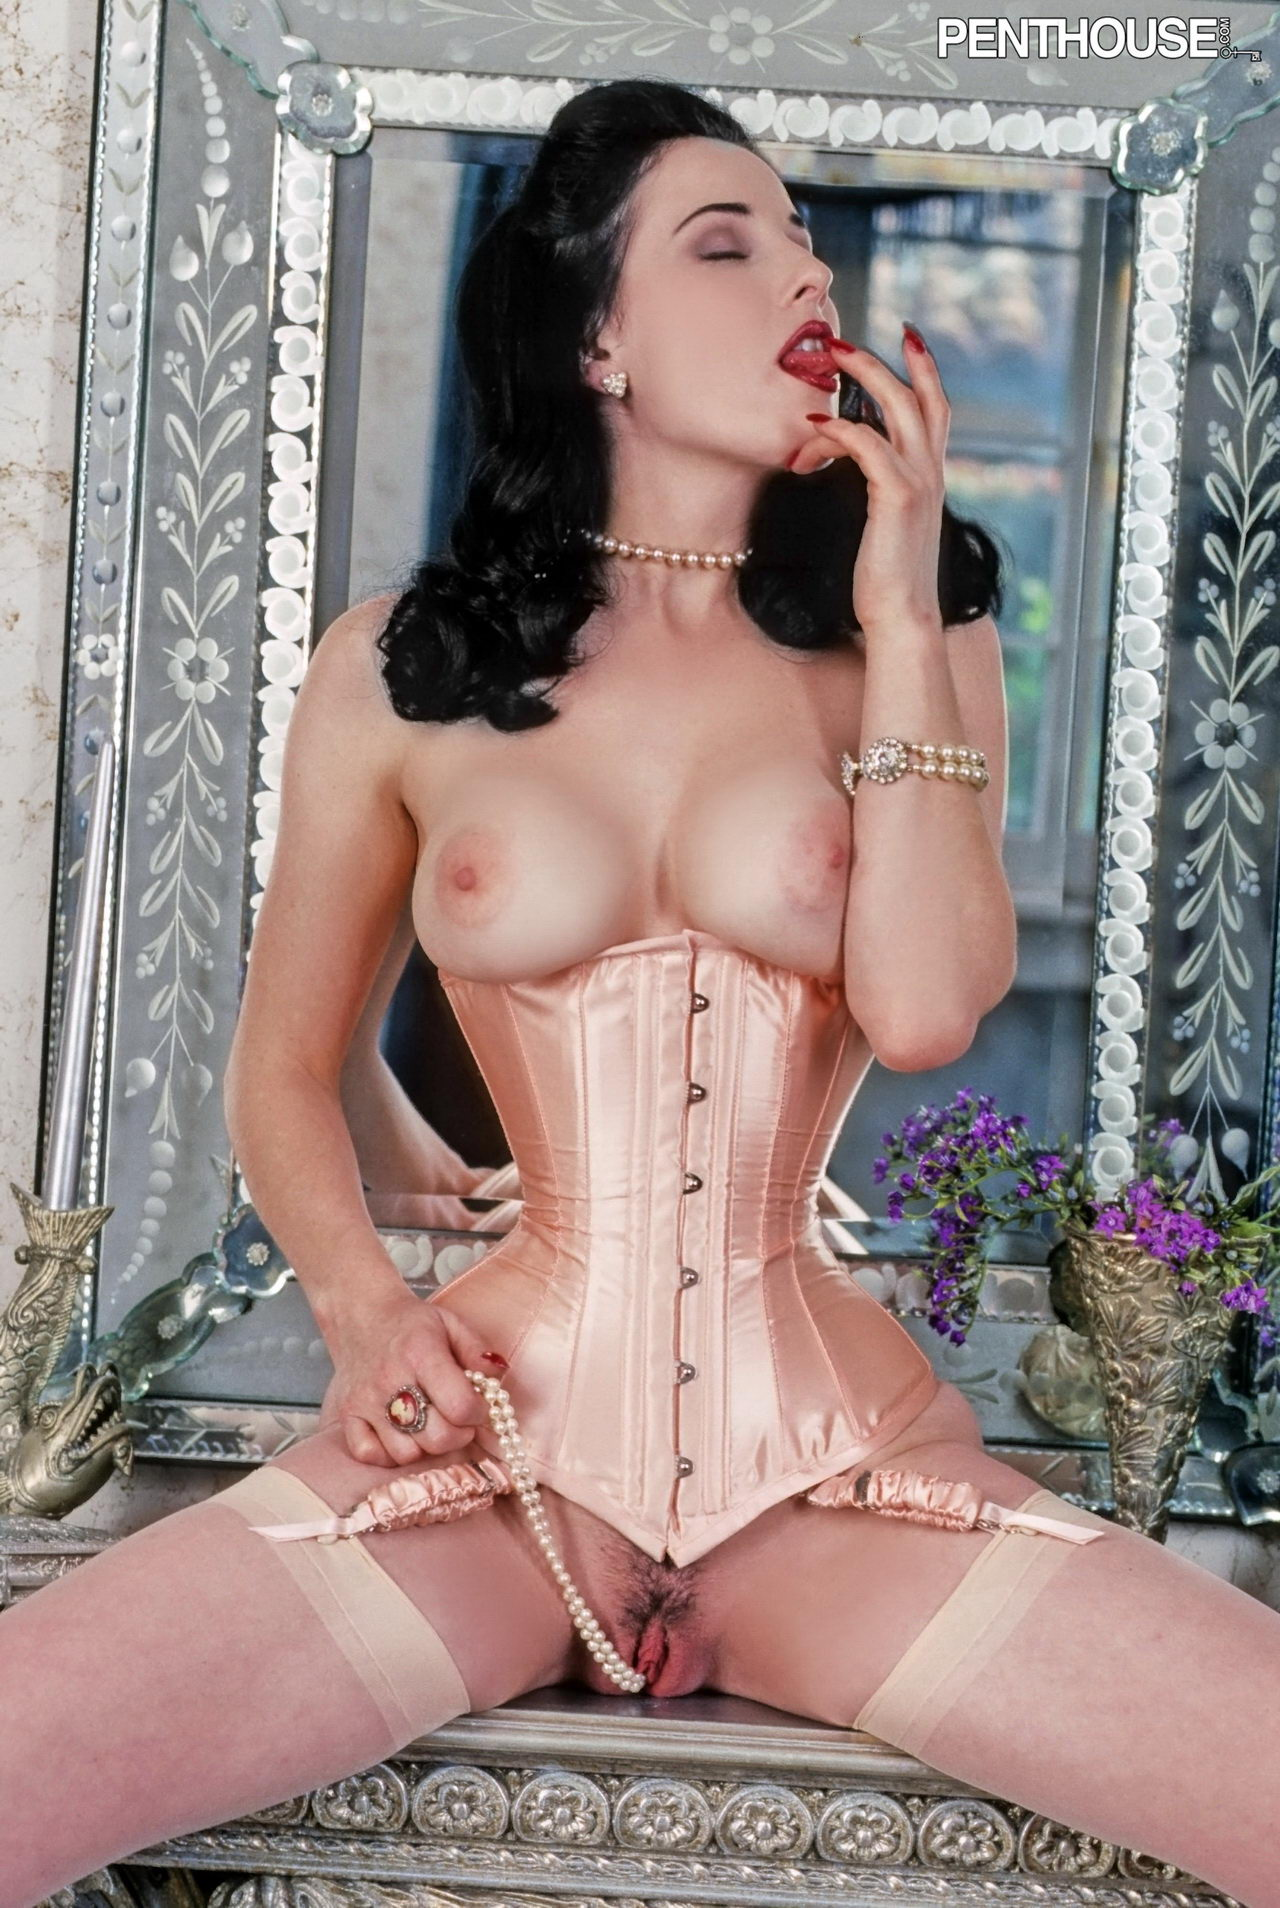 Stunning. dita von teese her pussy love those